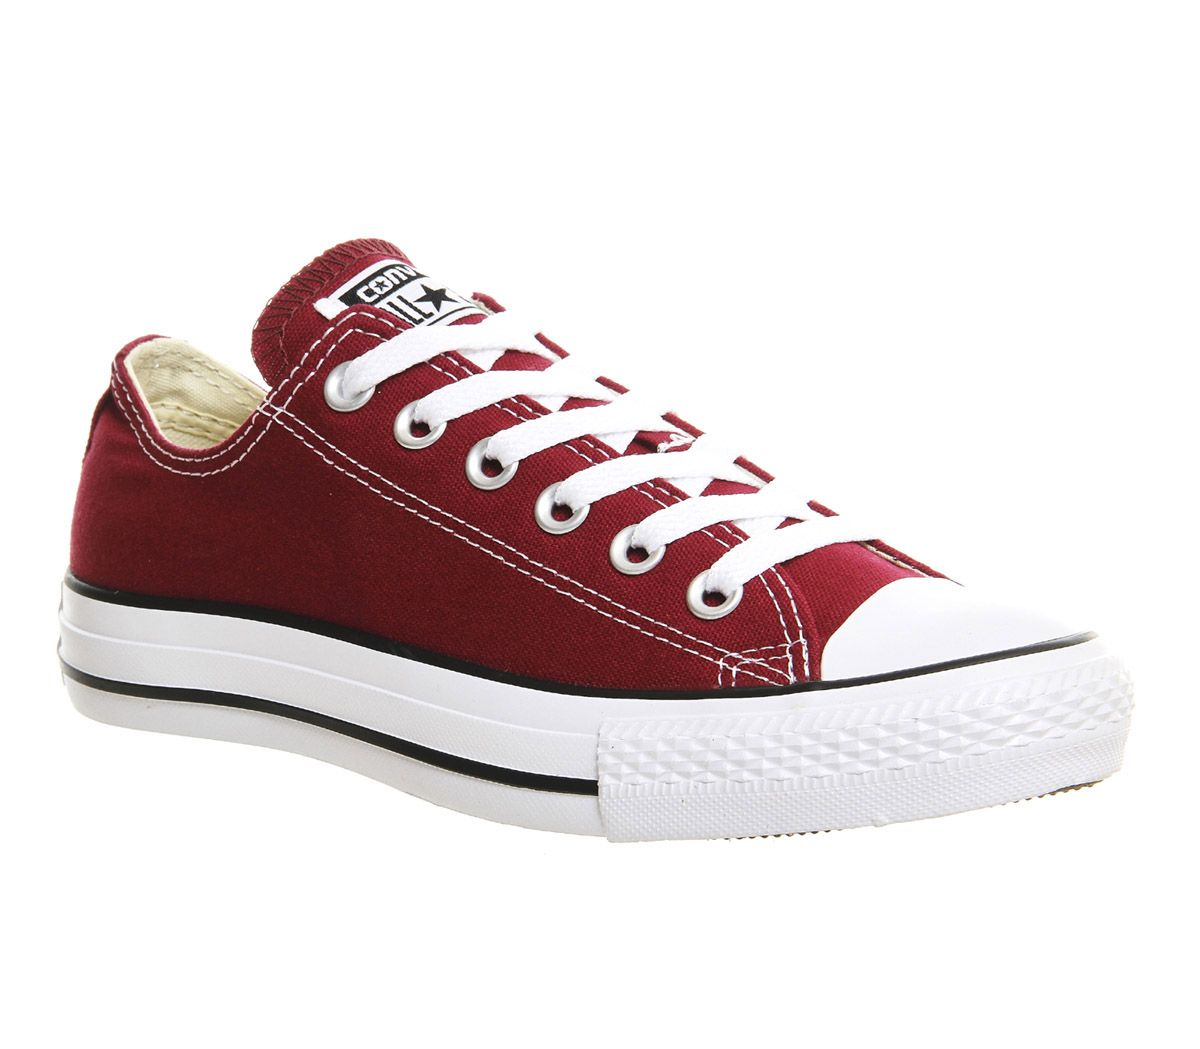 c1b05b92ea3d Converse All Star Low Maroon Canvas - Unisex Sports